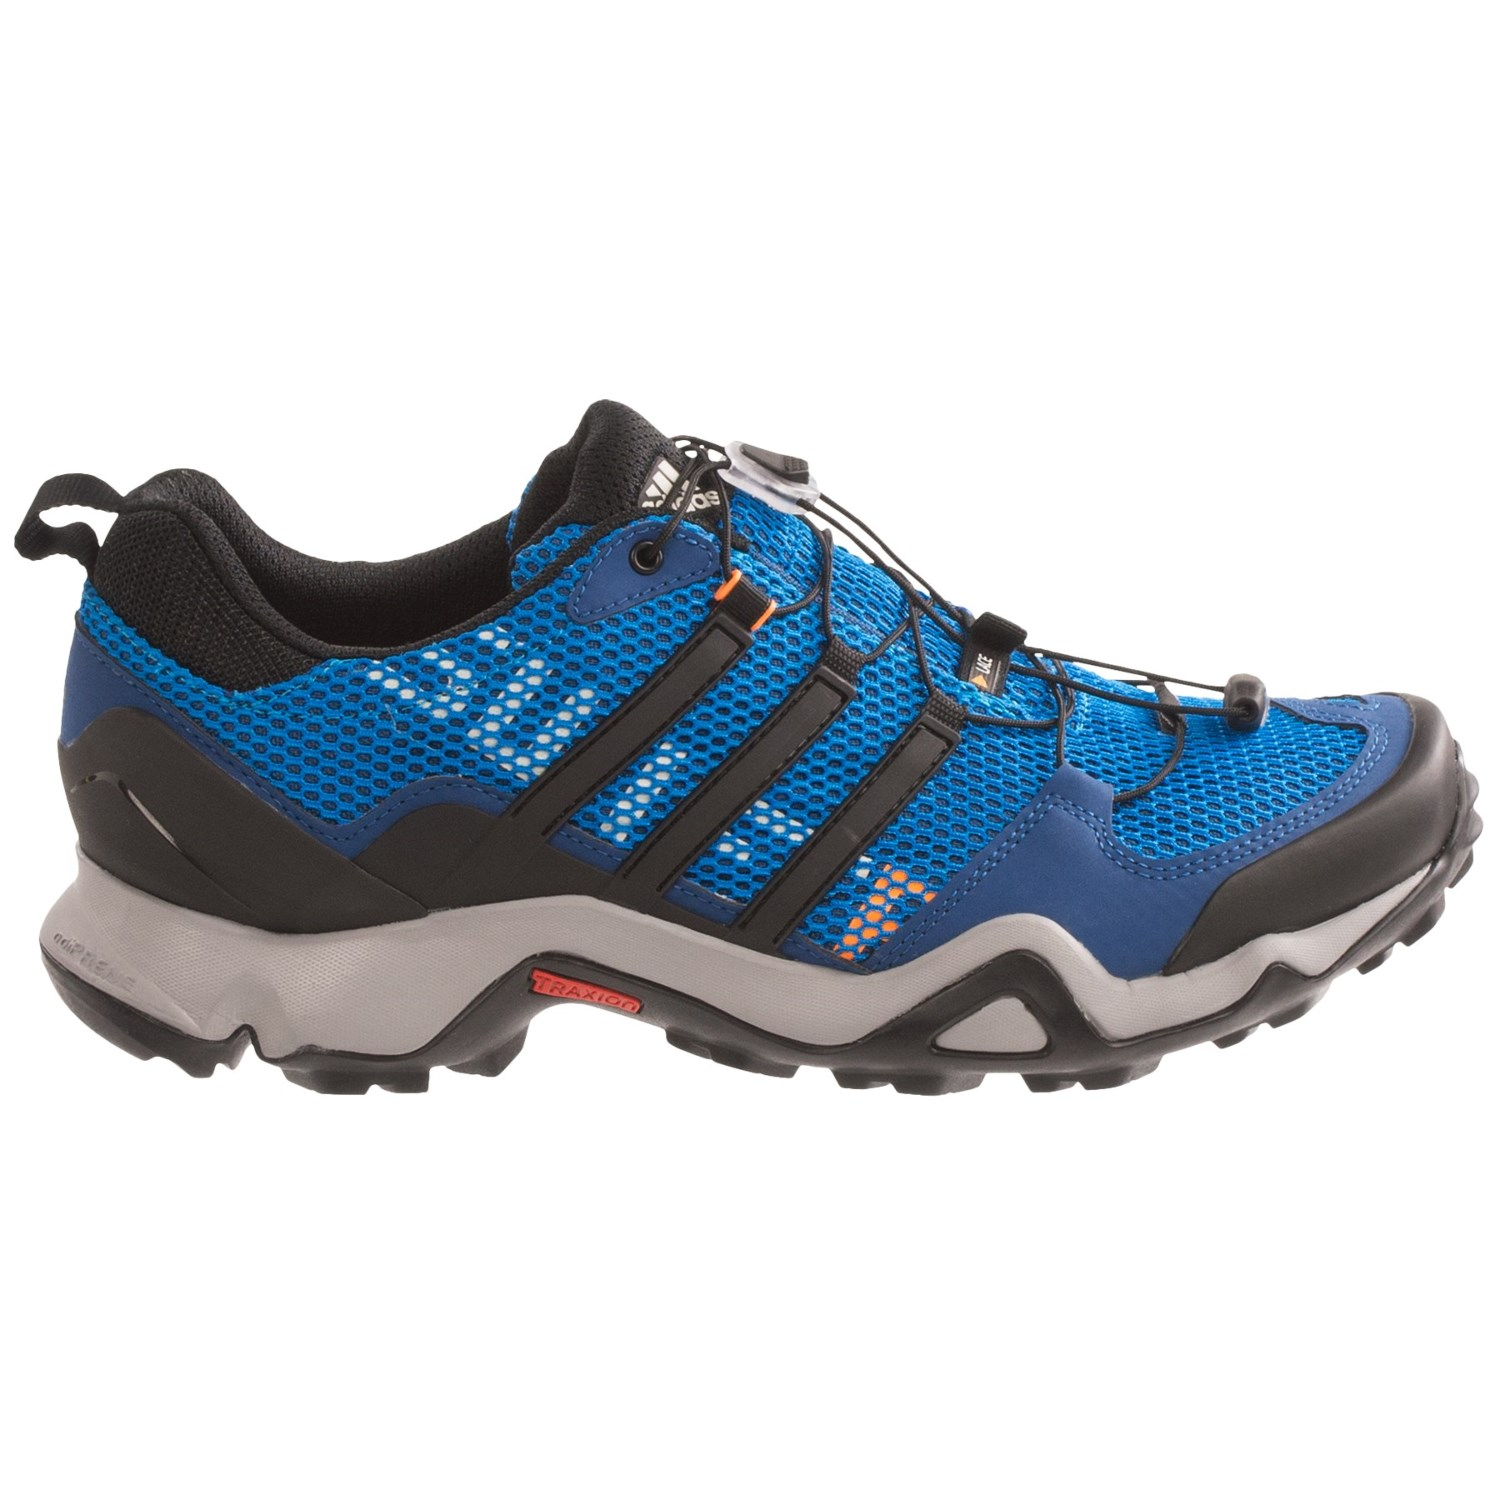 Adidas Trail Shoes Review